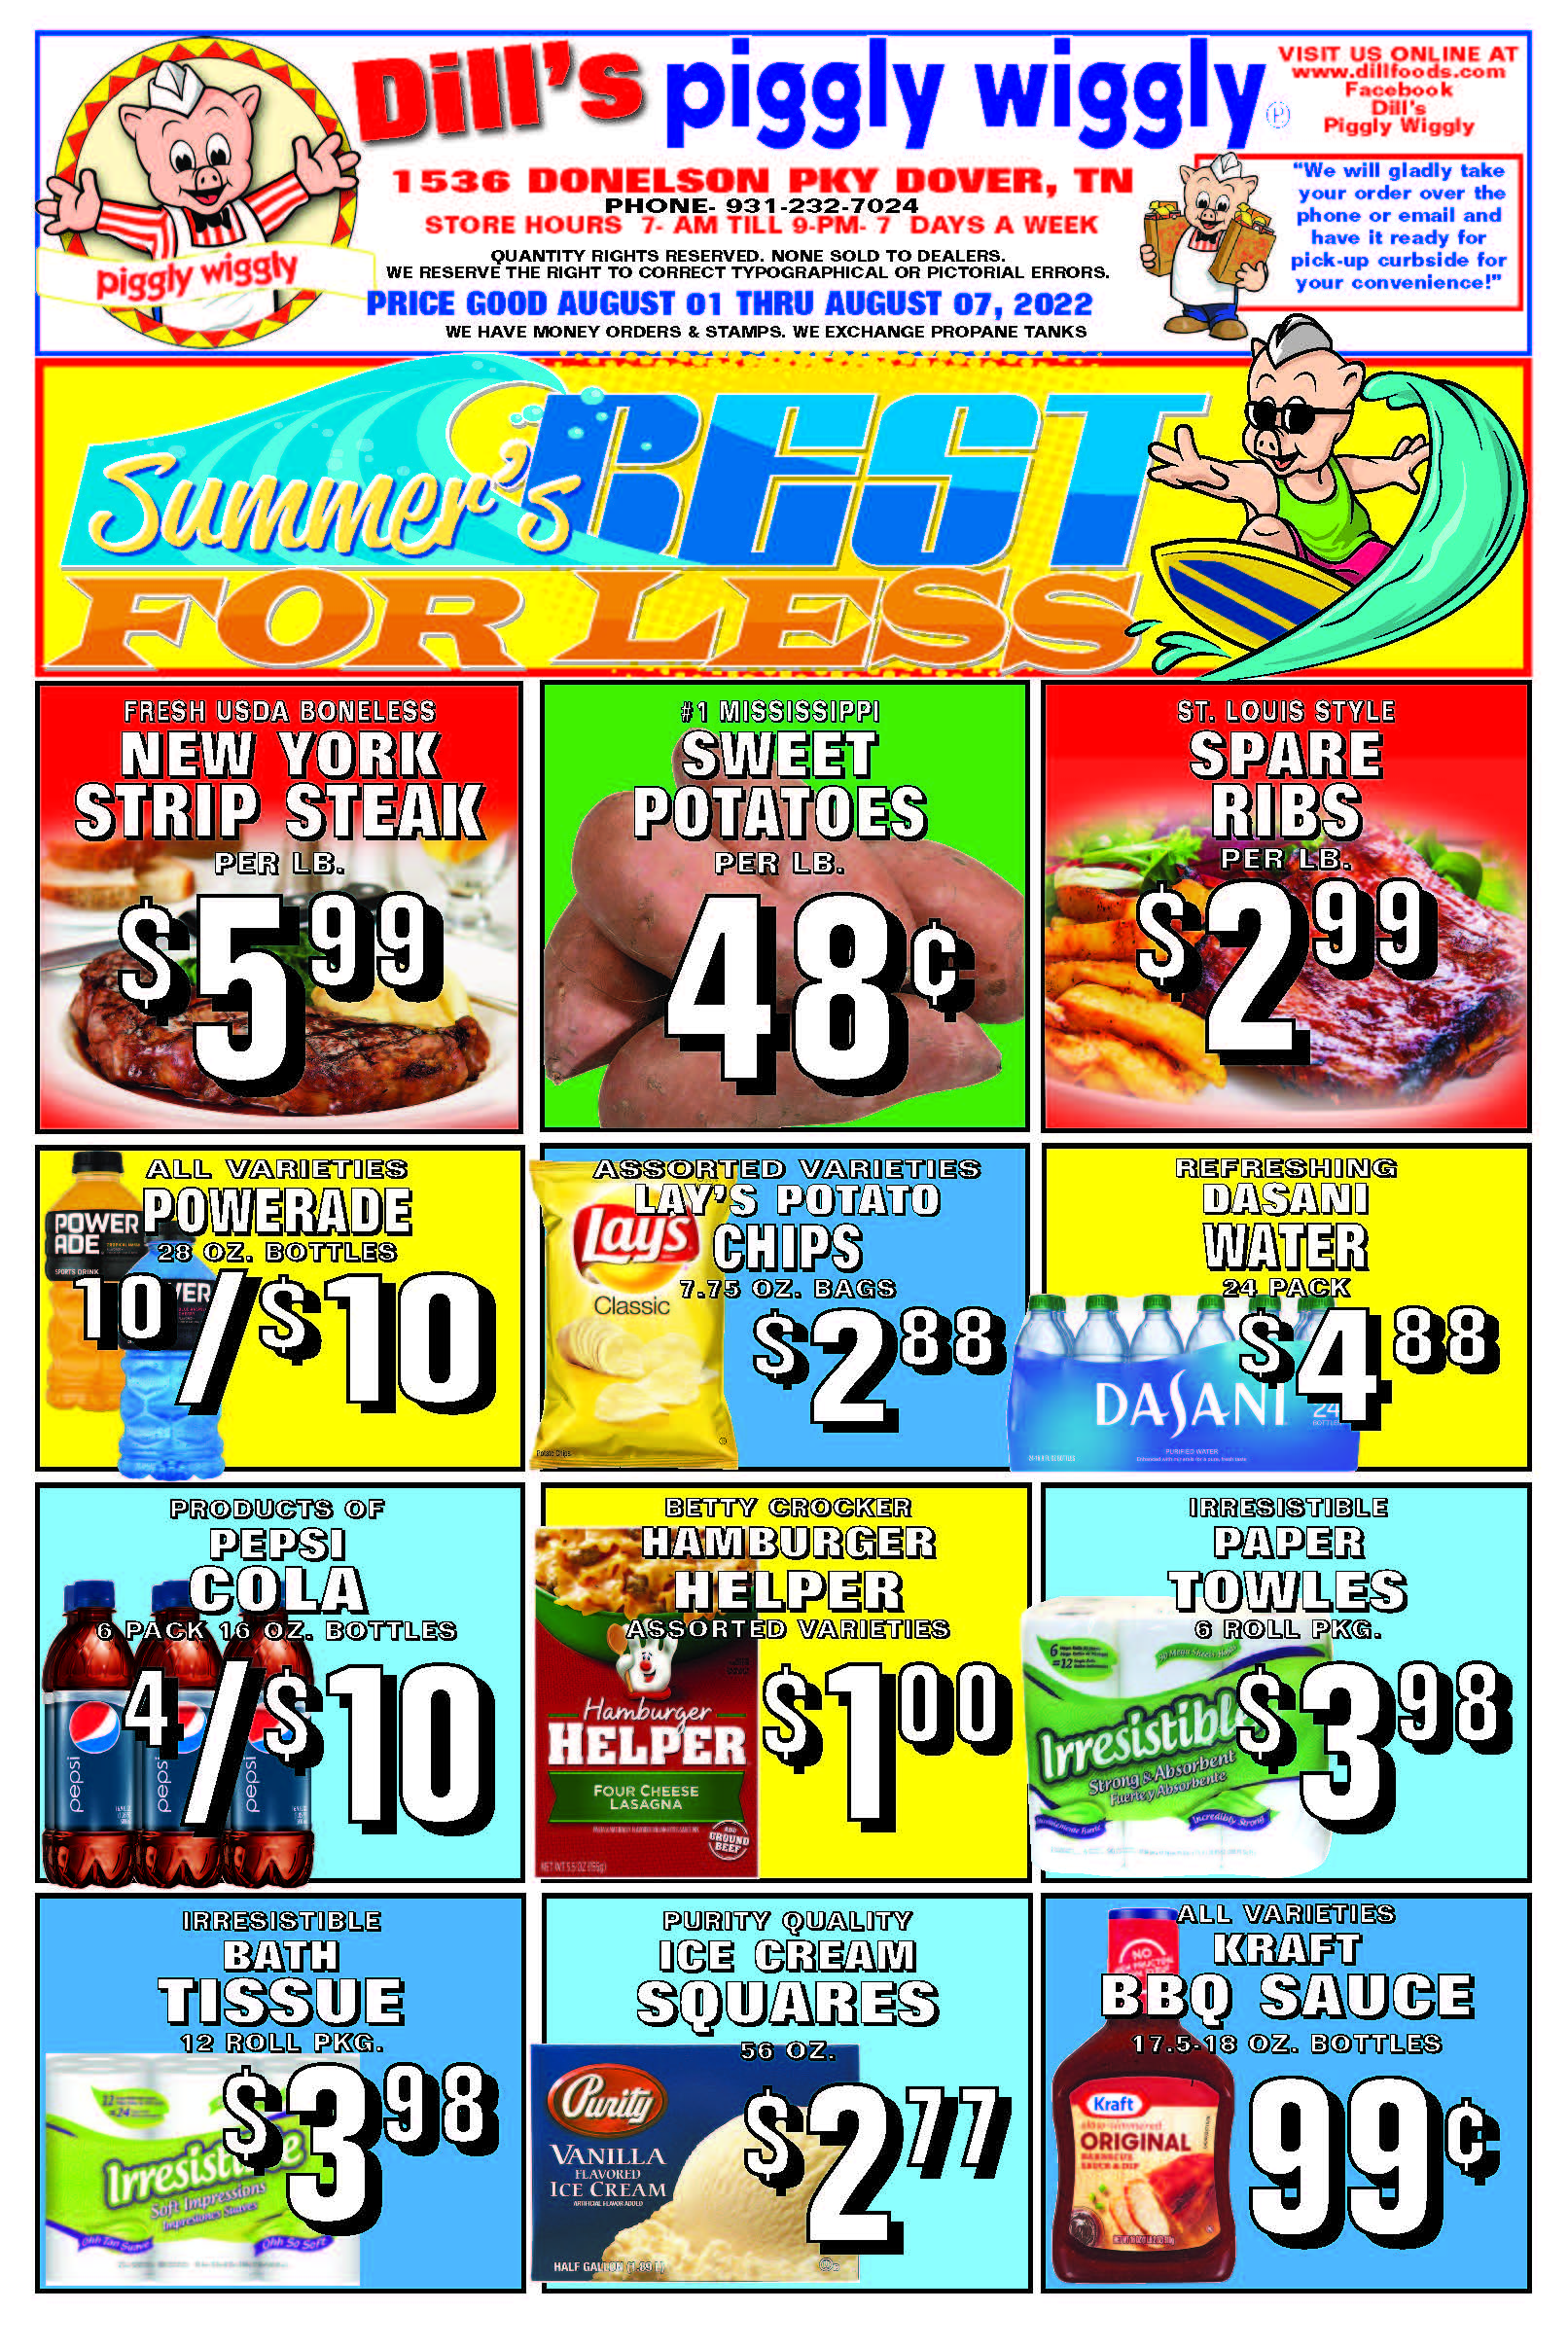 Piggly Wiggly Weekly Specials Ad